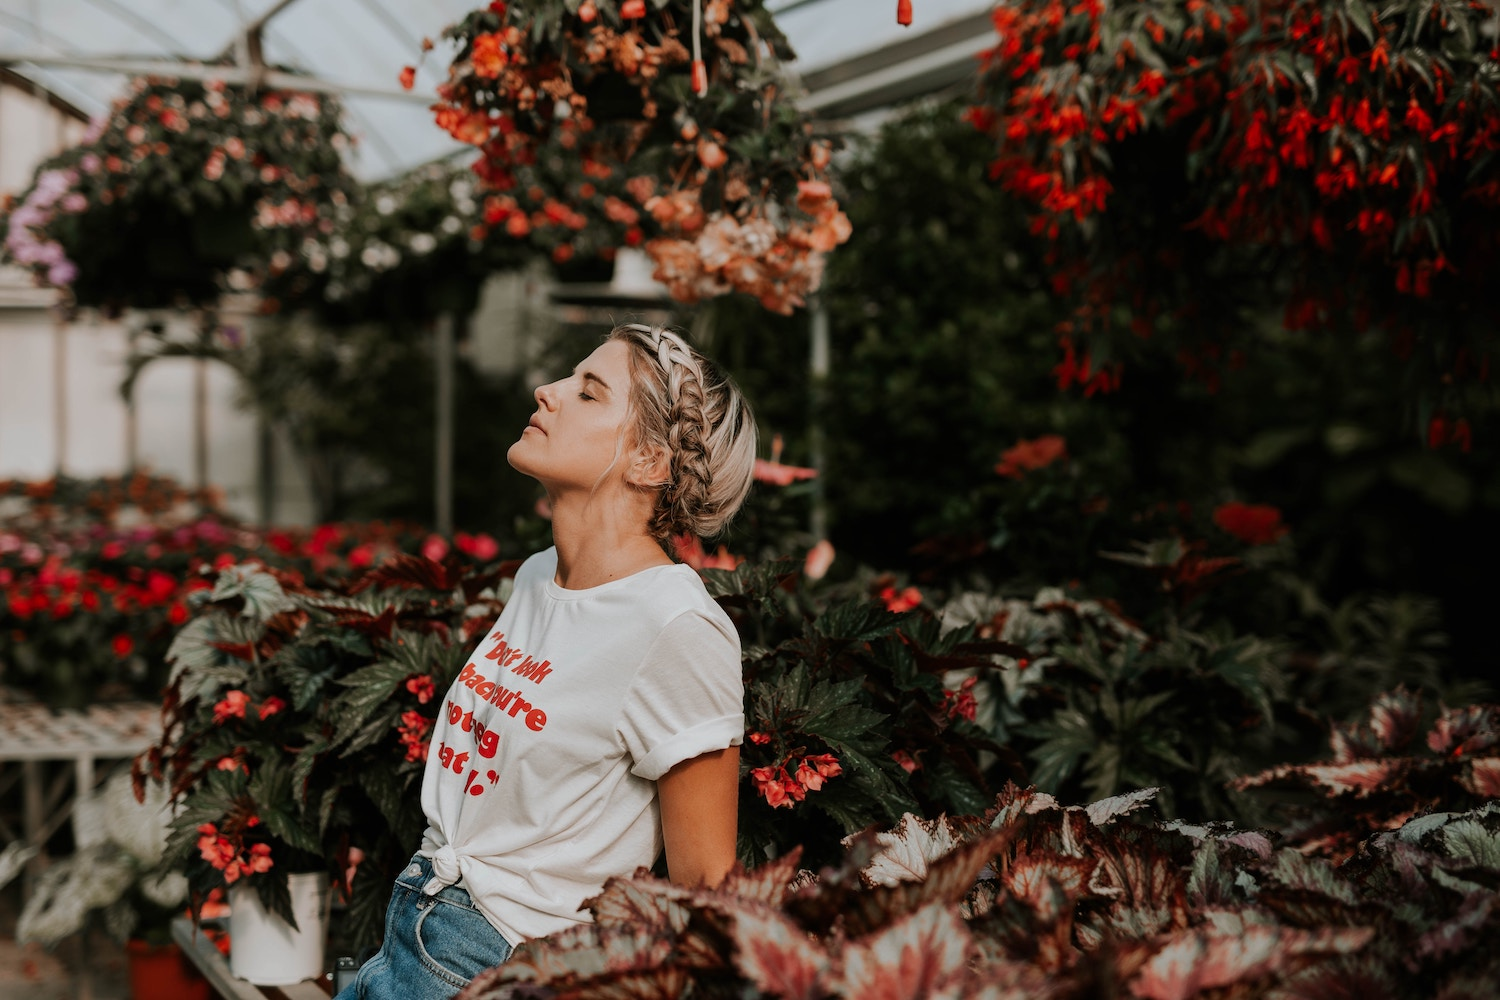 Working on building up your self confidence? Download a free checklist of 6 common confidence shakers for millennial women, and tips on  how to overcome them.